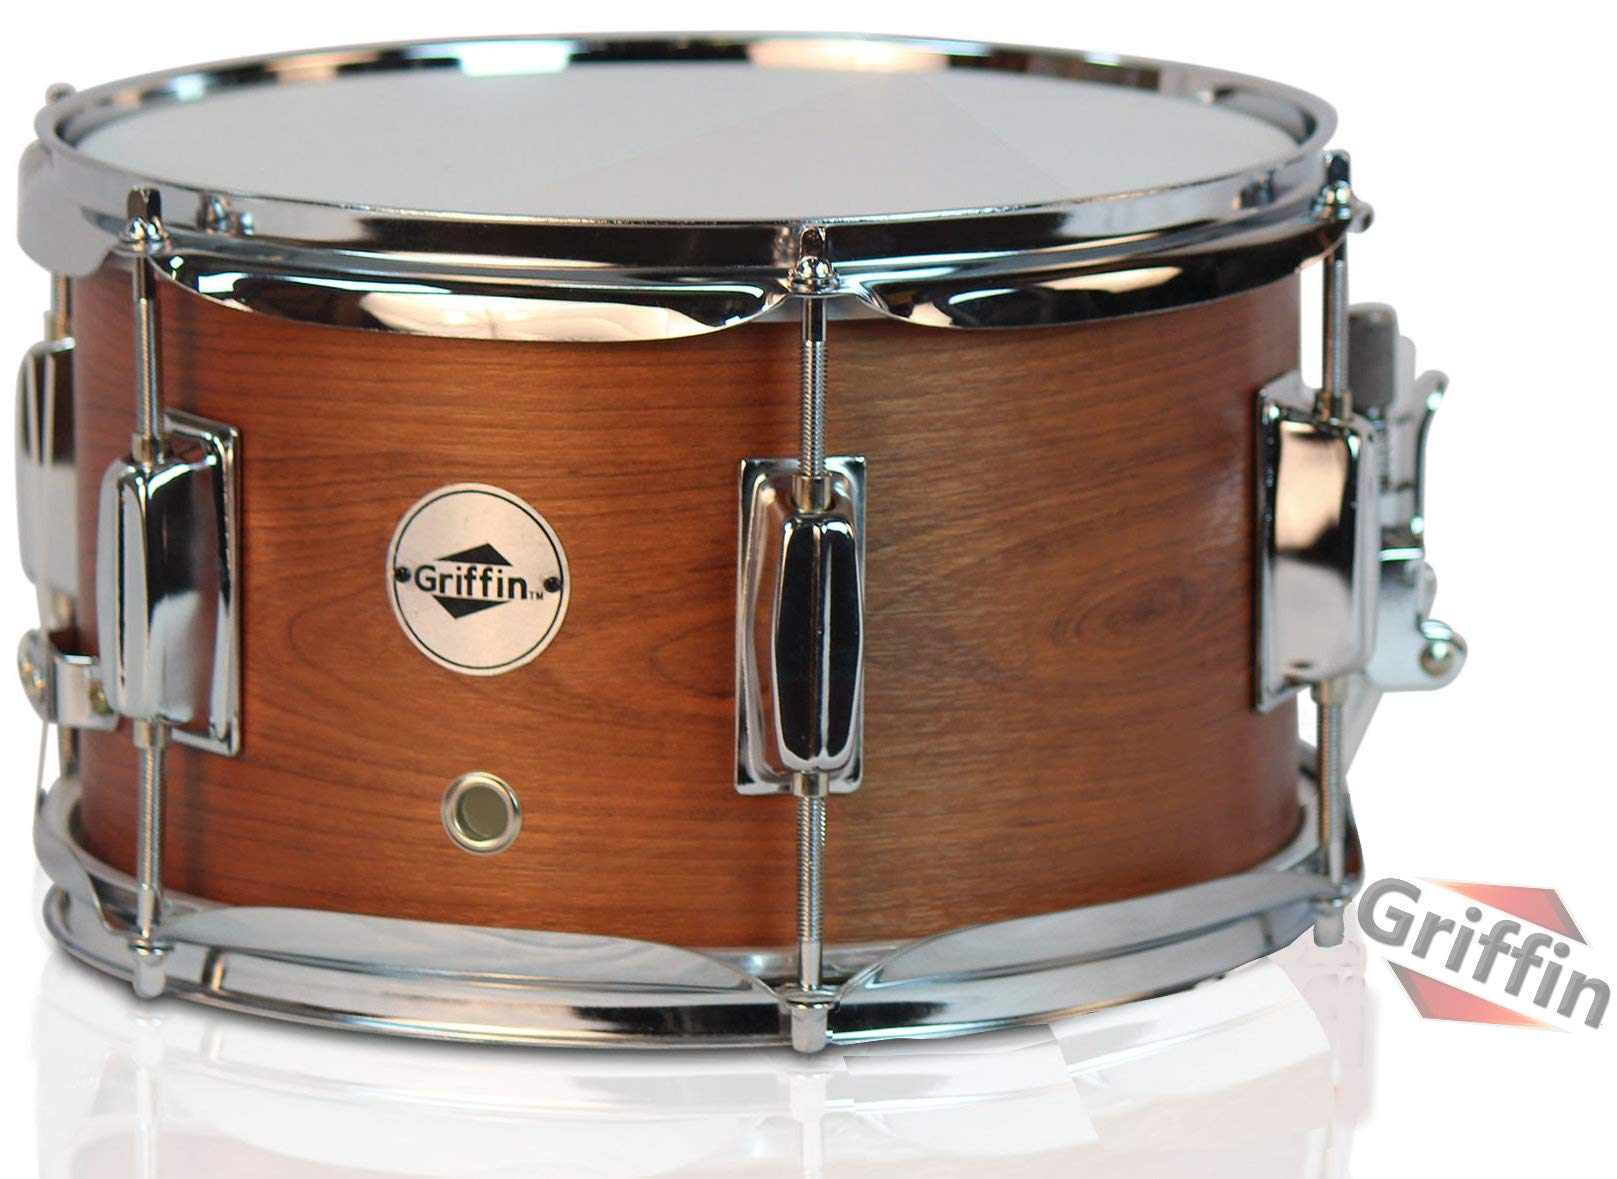 Popcorn Snare Drum by Griffin Soprano Firecracker 10'' x 6'' Poplar Wood Shell with Hickory PVC Concert Percussion Musical Instrument with Drummers Key and Deluxe Snare Strainer Beginner & Professional